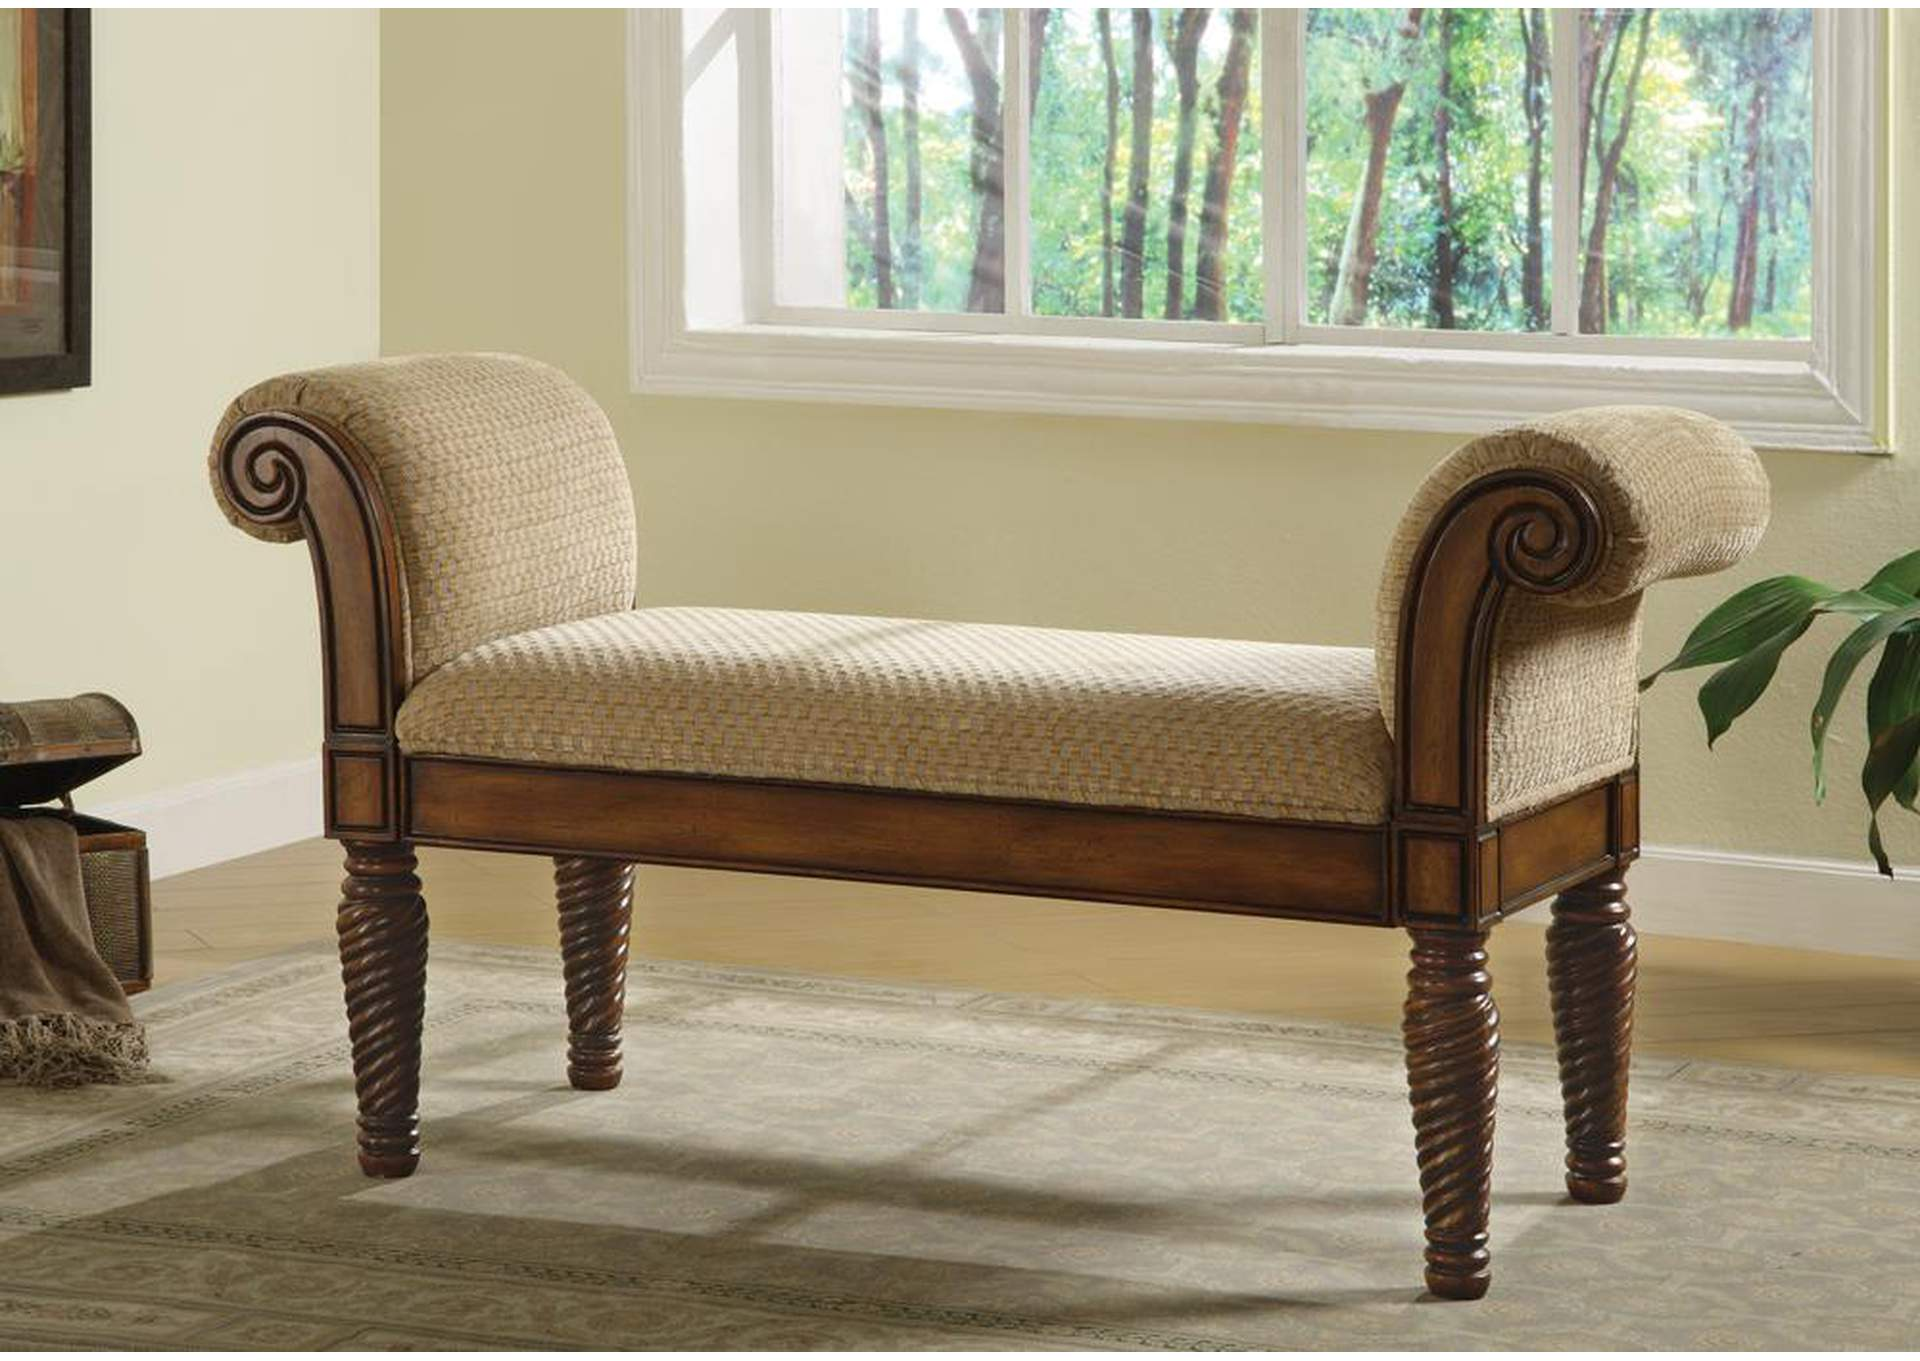 Beige & Brown Stately Upholstered Bench,Coaster Furniture